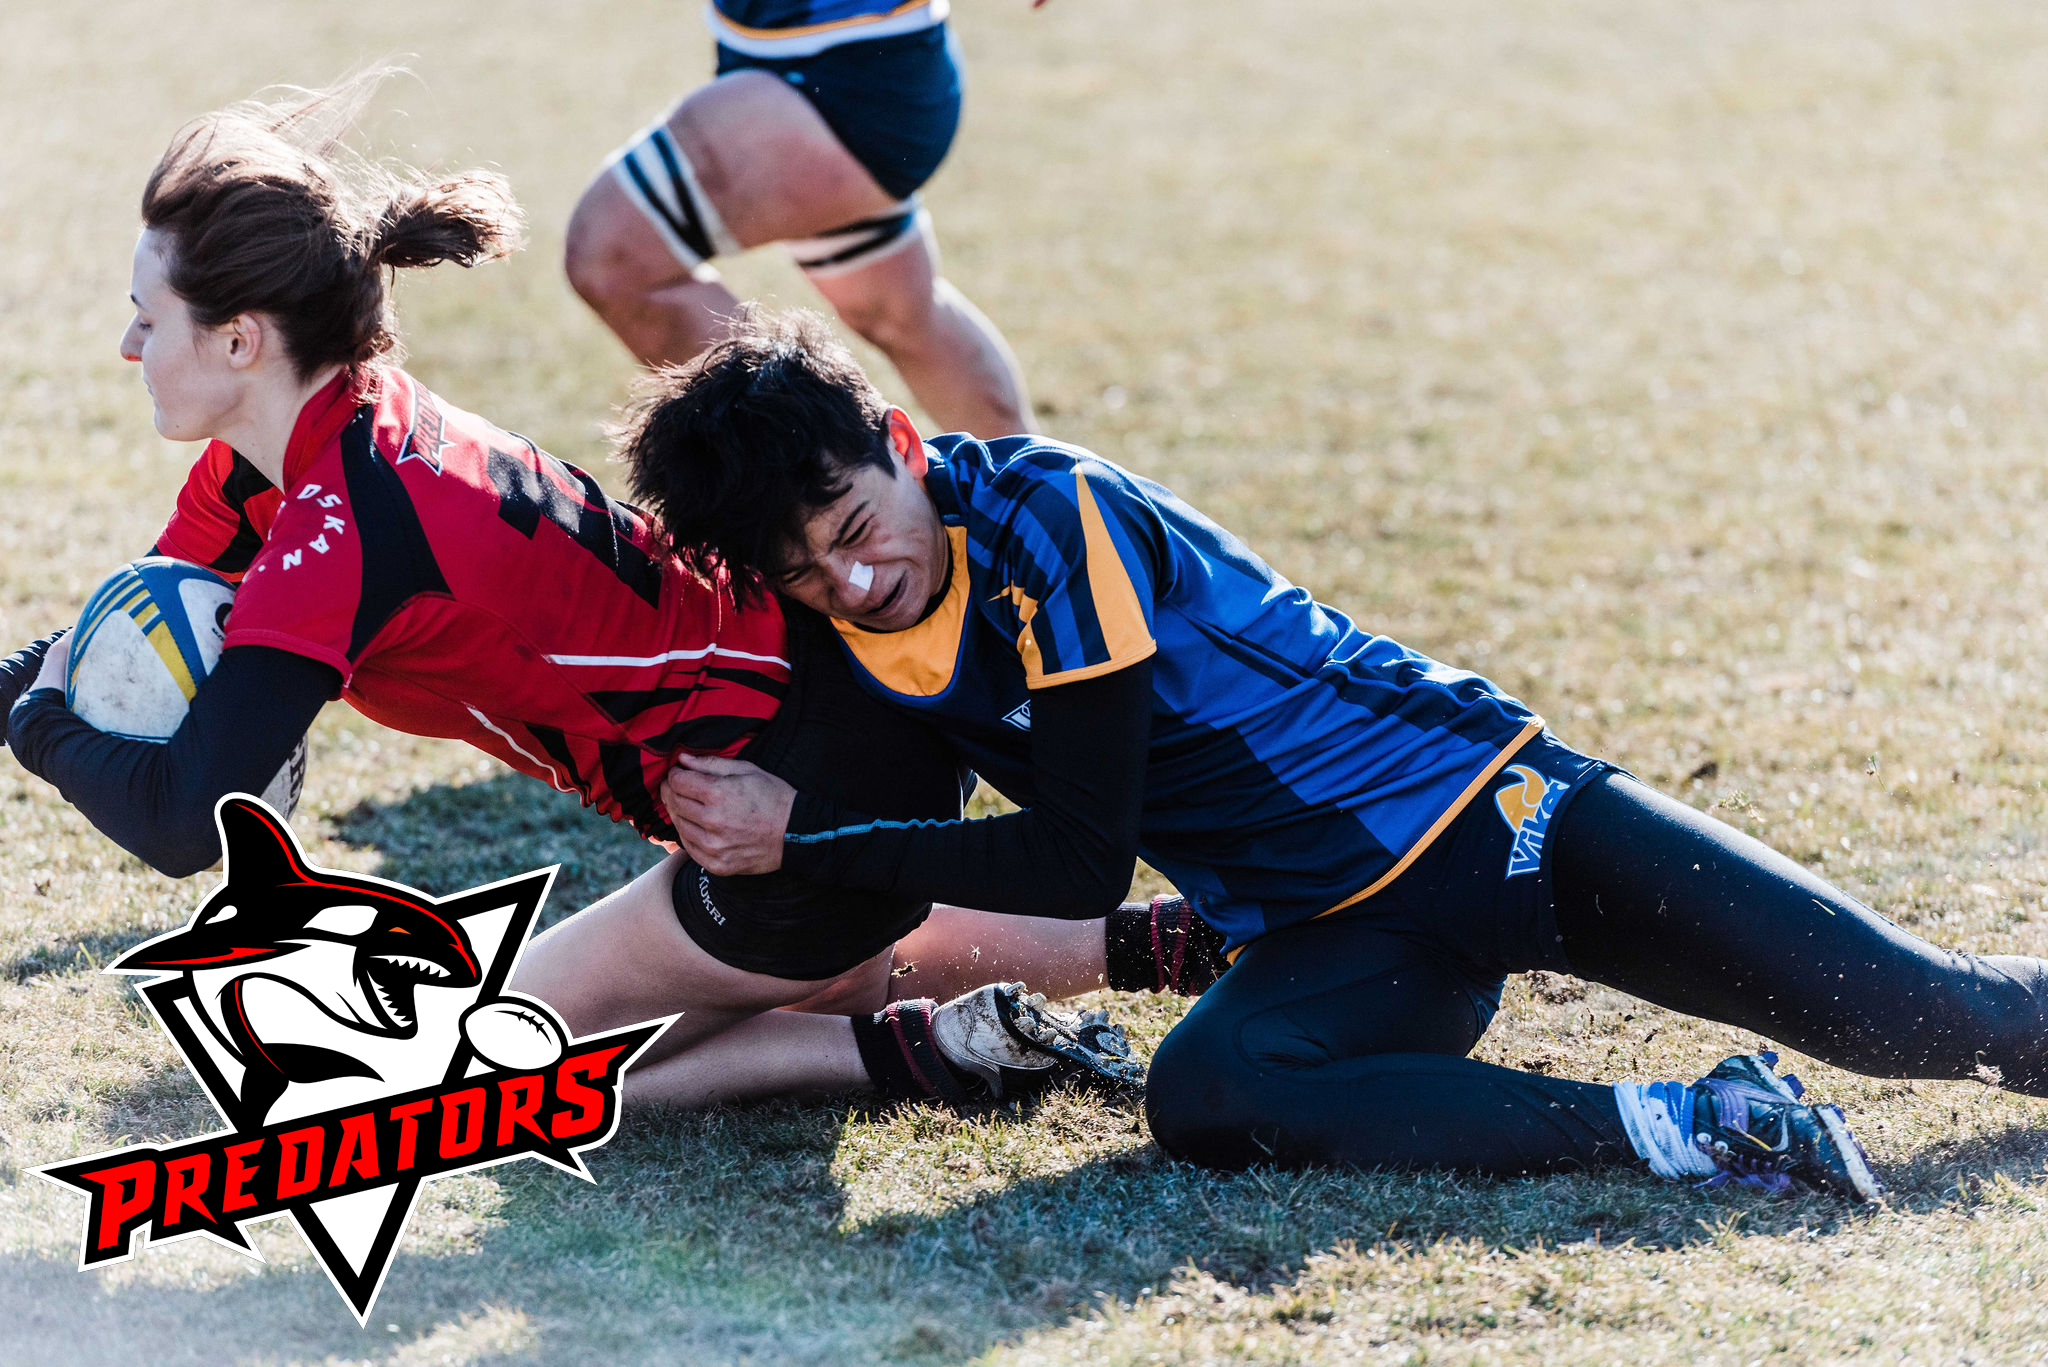 Predators Rugby - Our mission is to identify and develop young rugby athletes and provide them a strong foundation by prioritizing character, culture, and continuous improvement as they pursue their rugby ambitions.Learn More